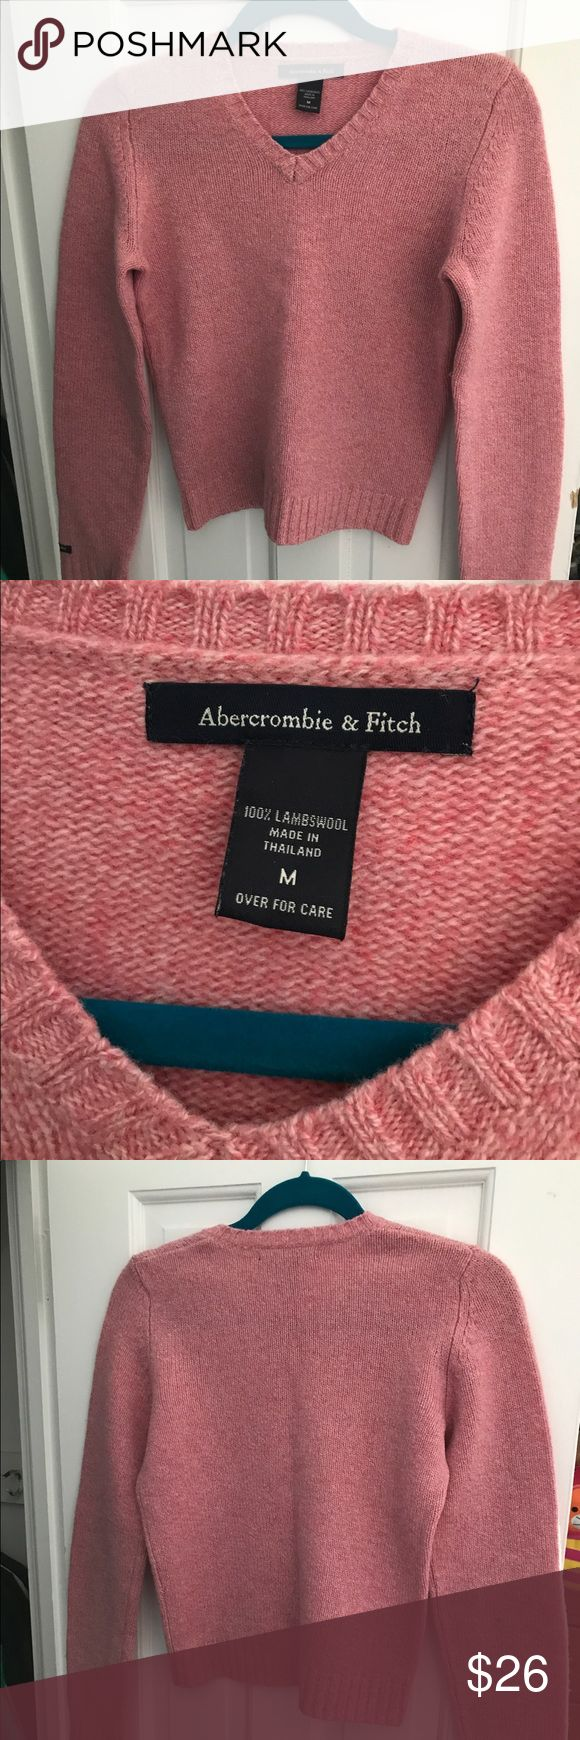 Vintage Lambwool Abercrombie and Fitch sweater Minor mark on the right sleeve. Great condition otherwise.  Thank you for looking!  I ship within 2 days shipping excluding holidays I do not trade! I only accept offers through the offer button! Thank you for shopping and feel free to ask any questions! Abercrombie & Fitch Sweaters V-Necks